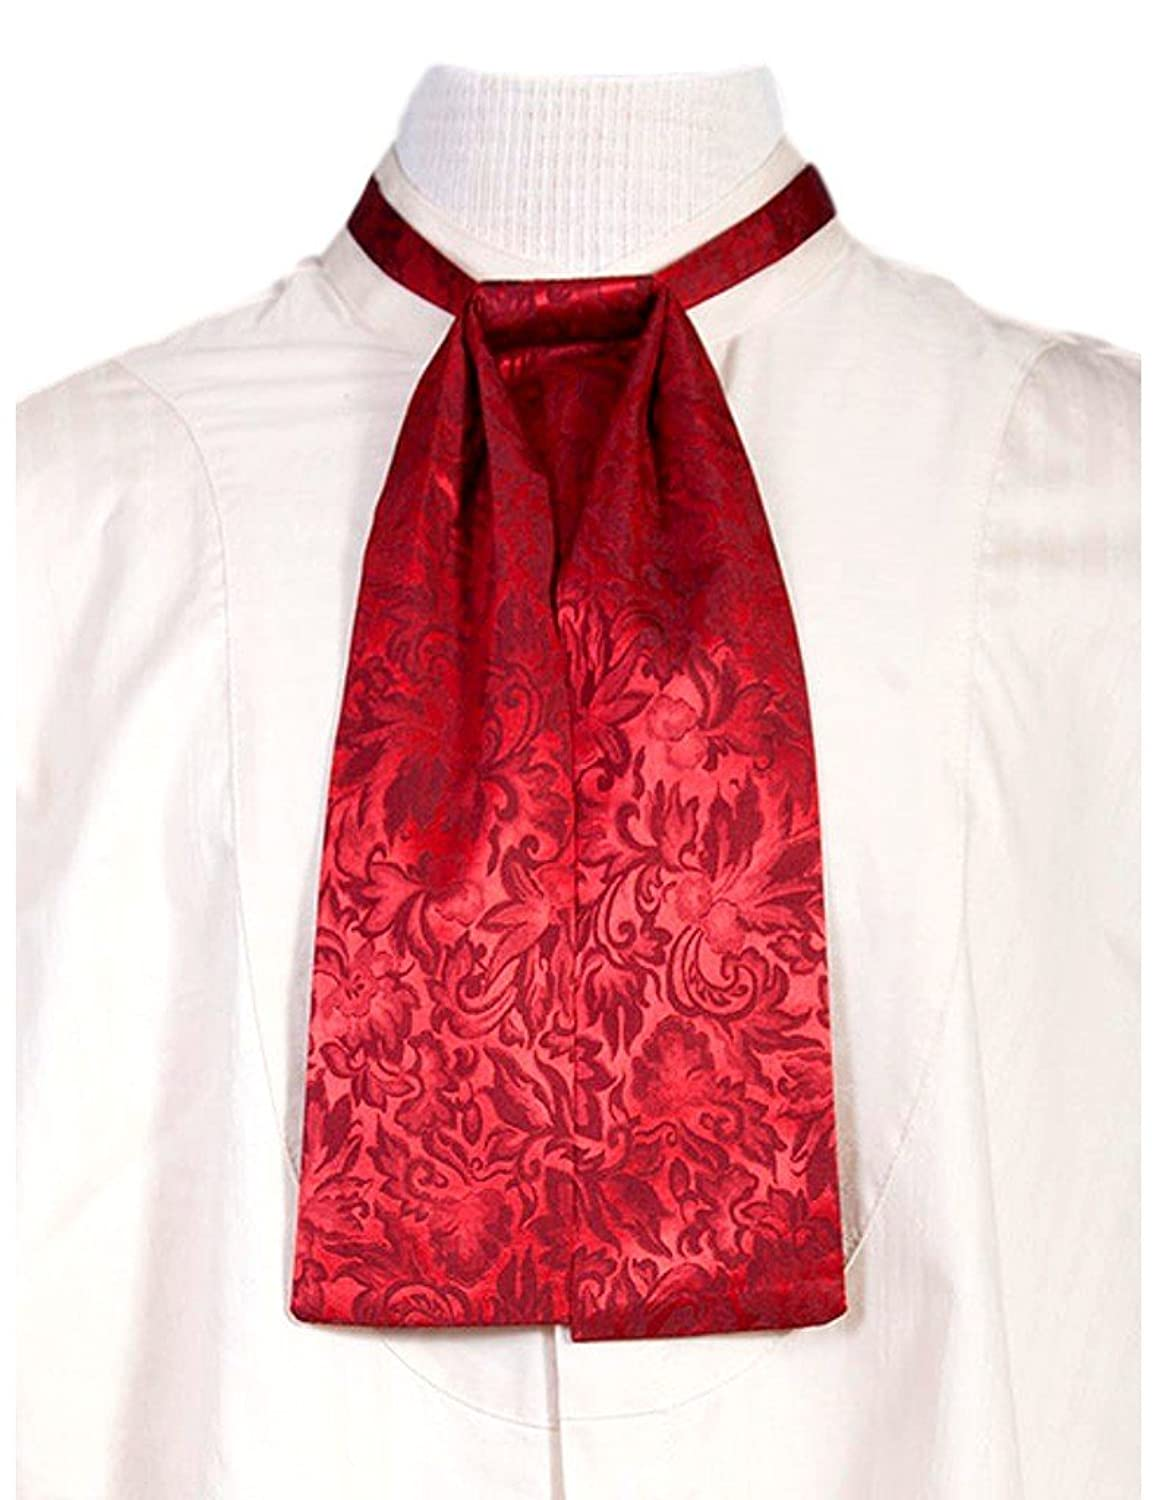 Victorian Mens Ties, Ascot, Cravat, Bow Tie, Necktie Old West Silk Puff Tie - 535300-Tau $39.95 AT vintagedancer.com